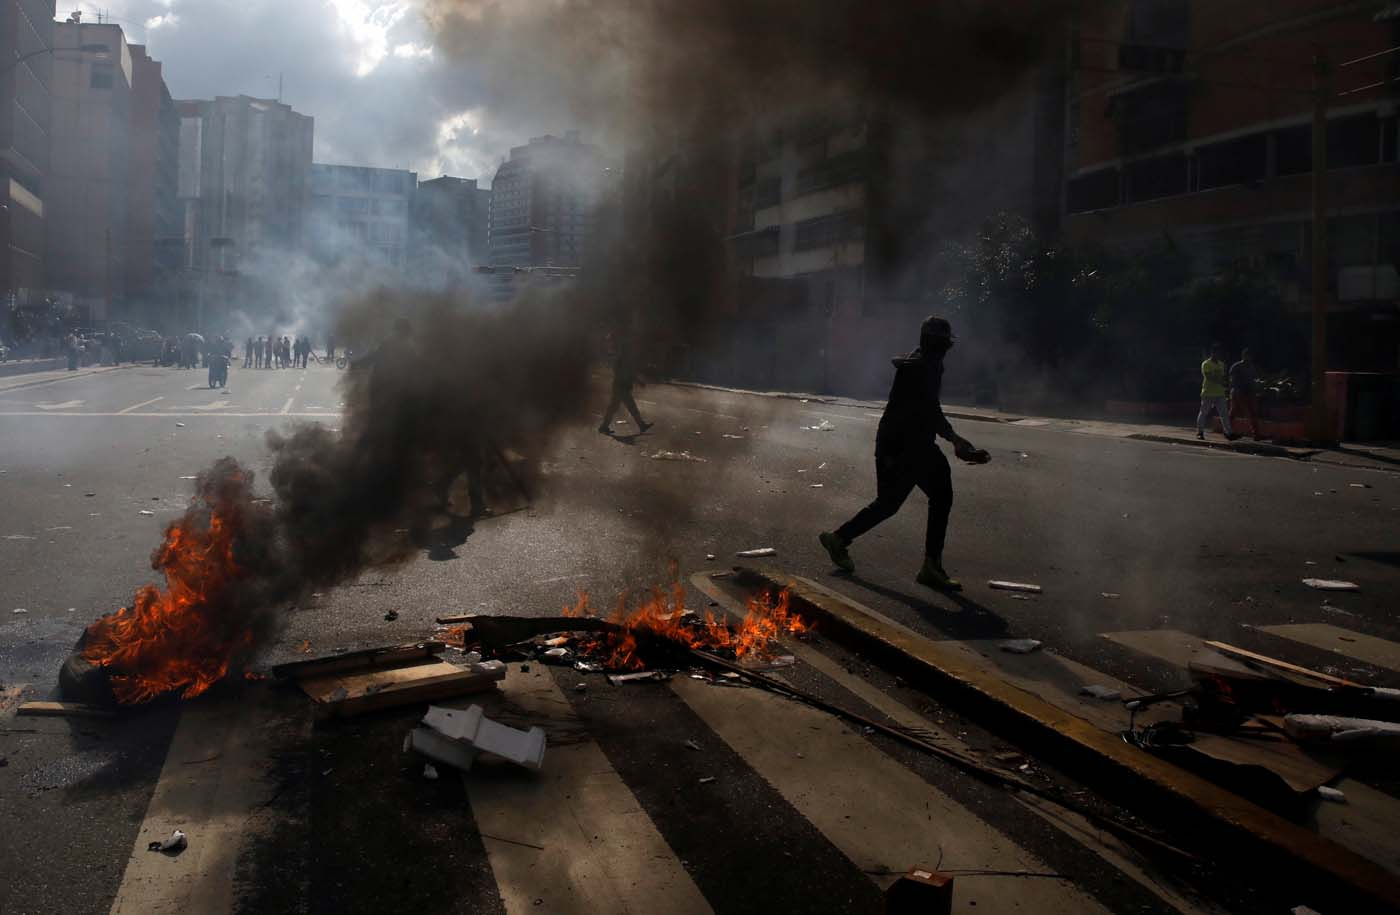 A demonstrator walks by a barricade during a rally against Venezuelan President Nicolas Maduro's government in Caracas, Venezuela, July 6, 2017. REUTERS/Carlos Garcia Rawlins